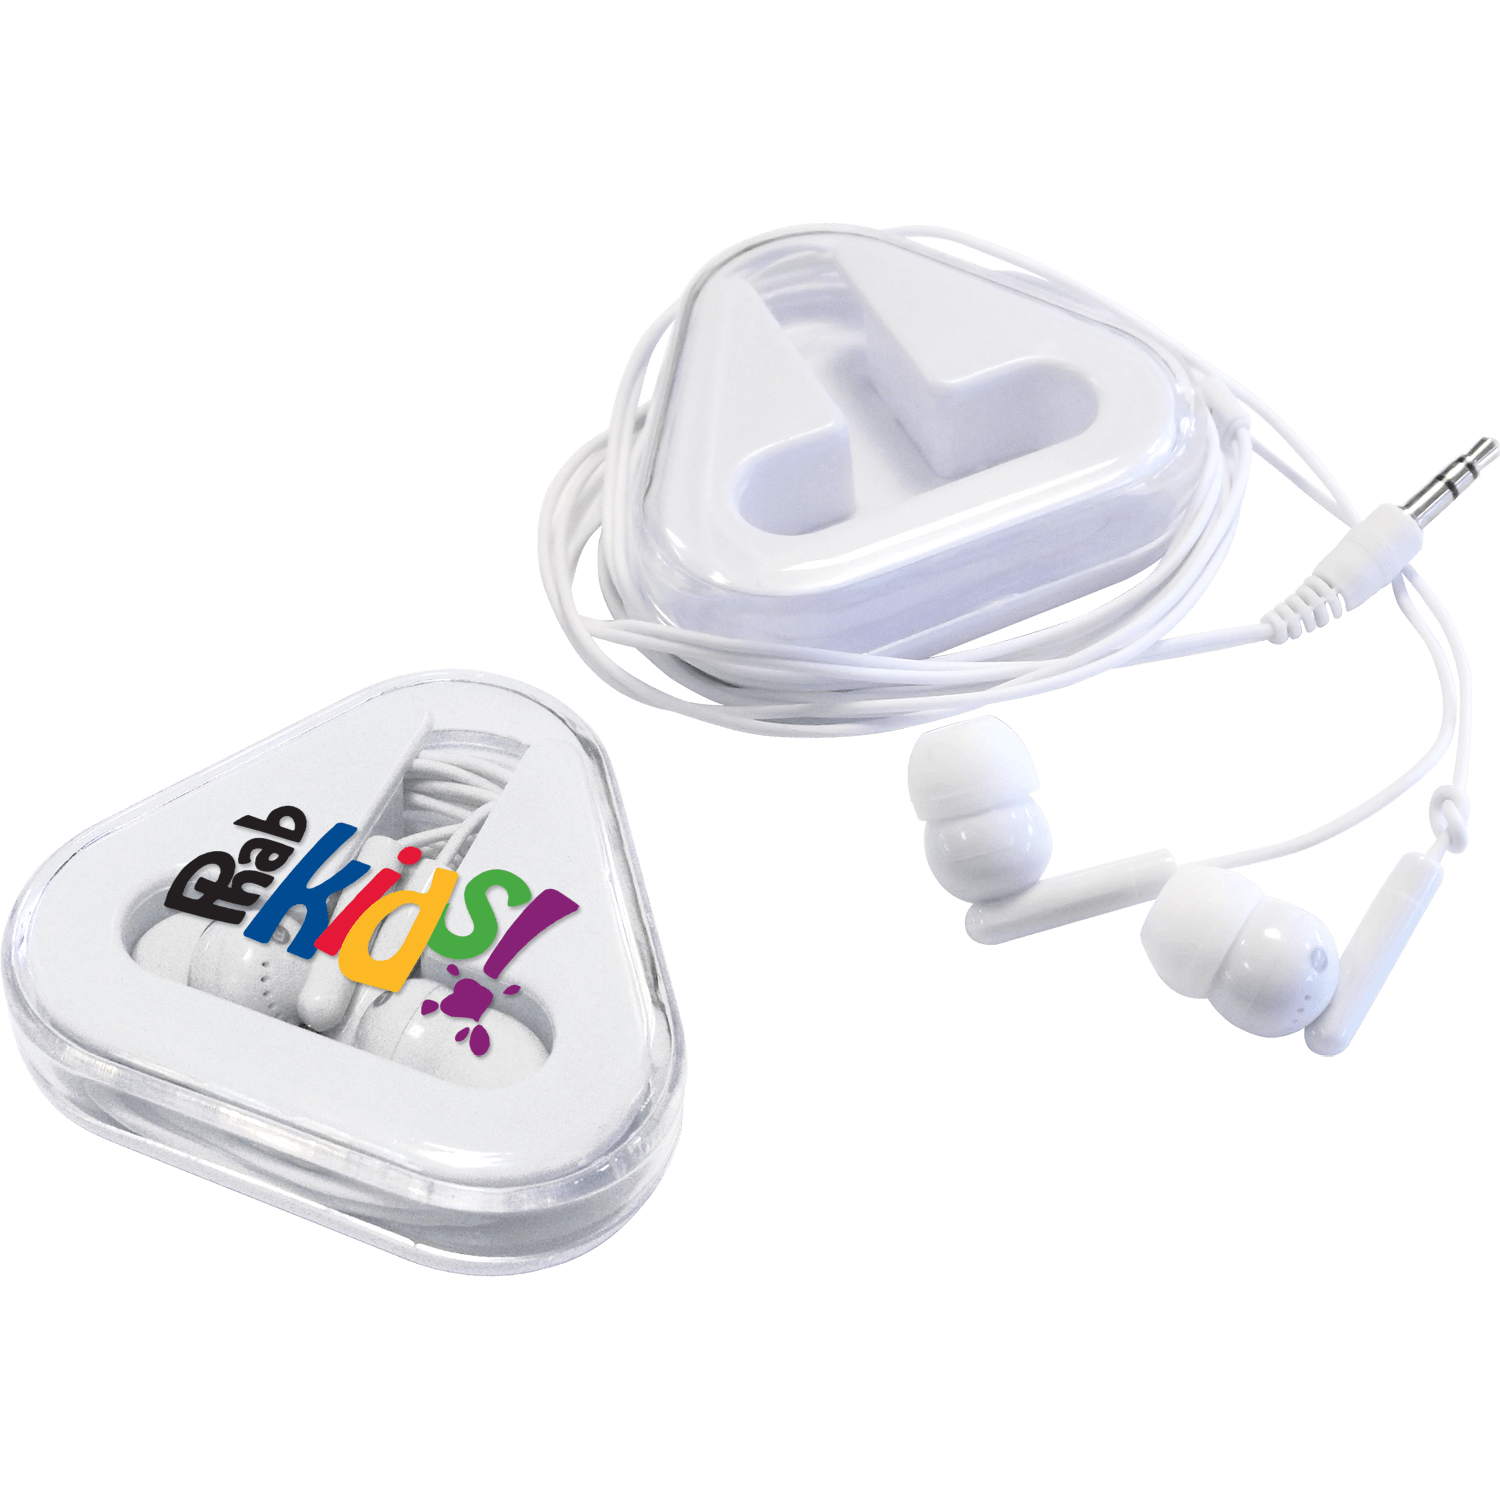 Branded Earphones